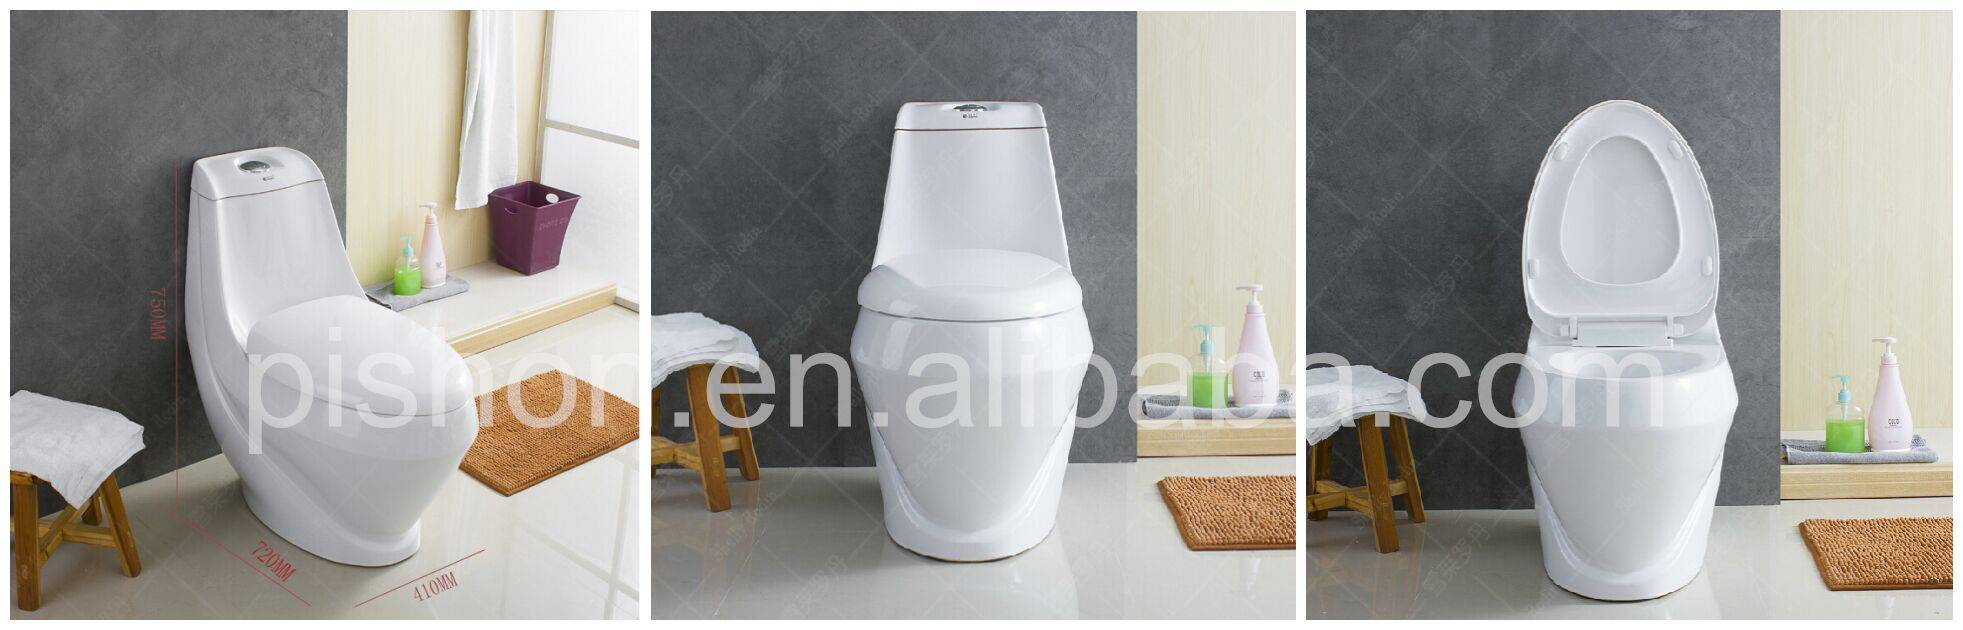 Midle East style one piece toilet